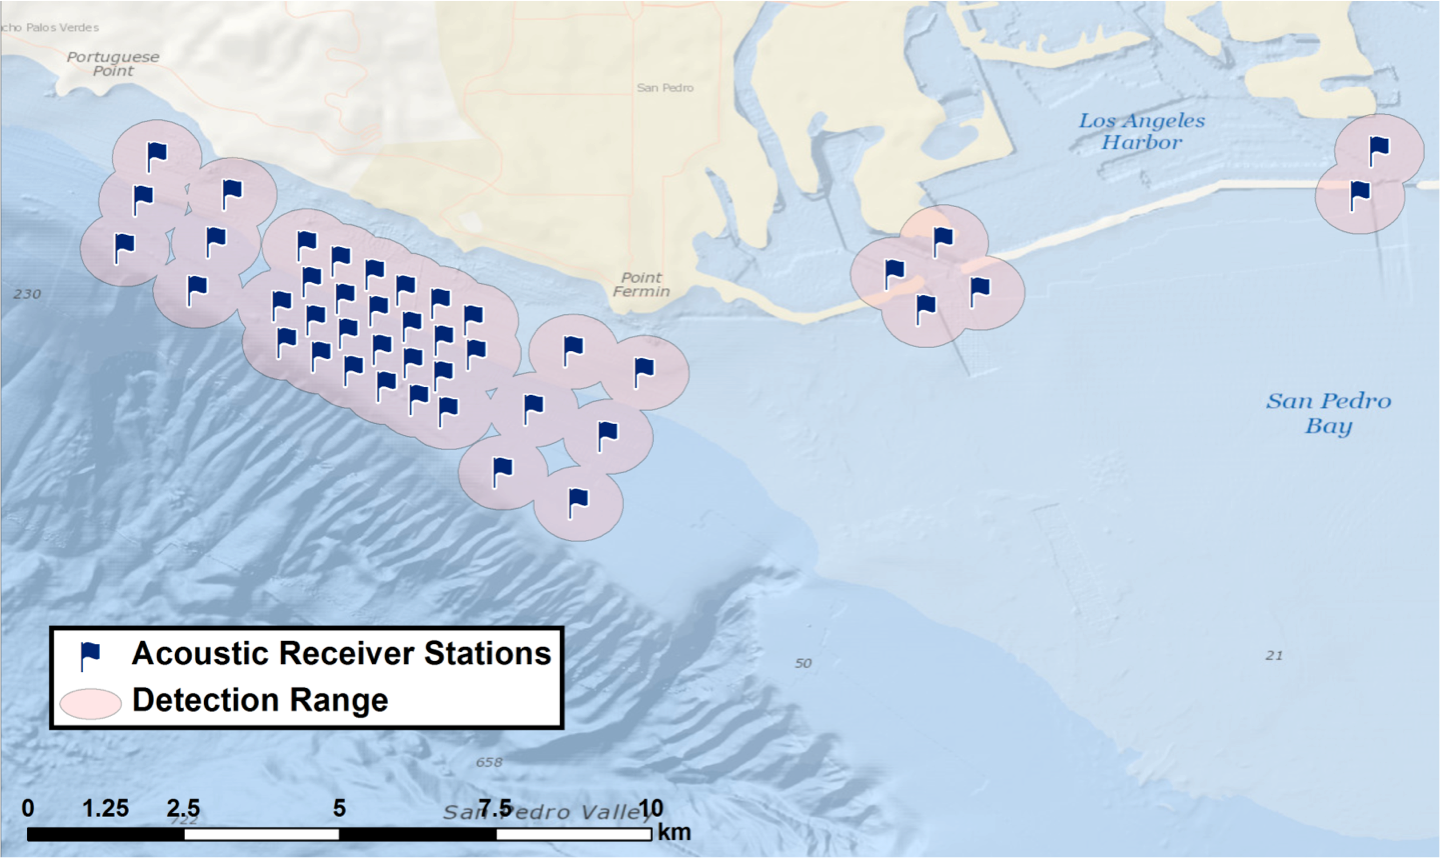 Fig. 4. map of San Pedro bay with acoustic receiver deployment locations